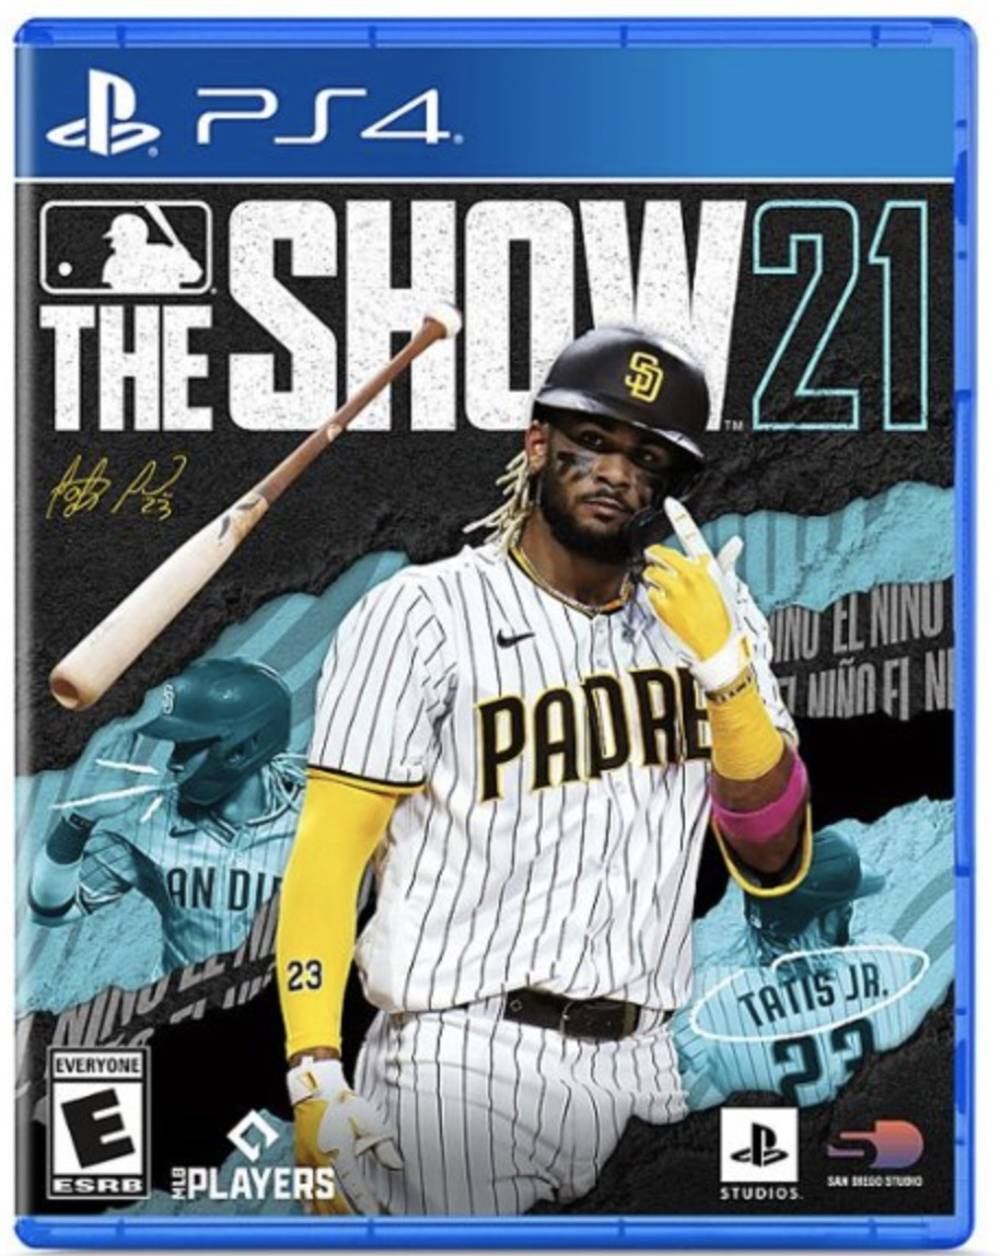 Ps4 MLB the Show 21 - MLB The Show 21 for PlayStation 4